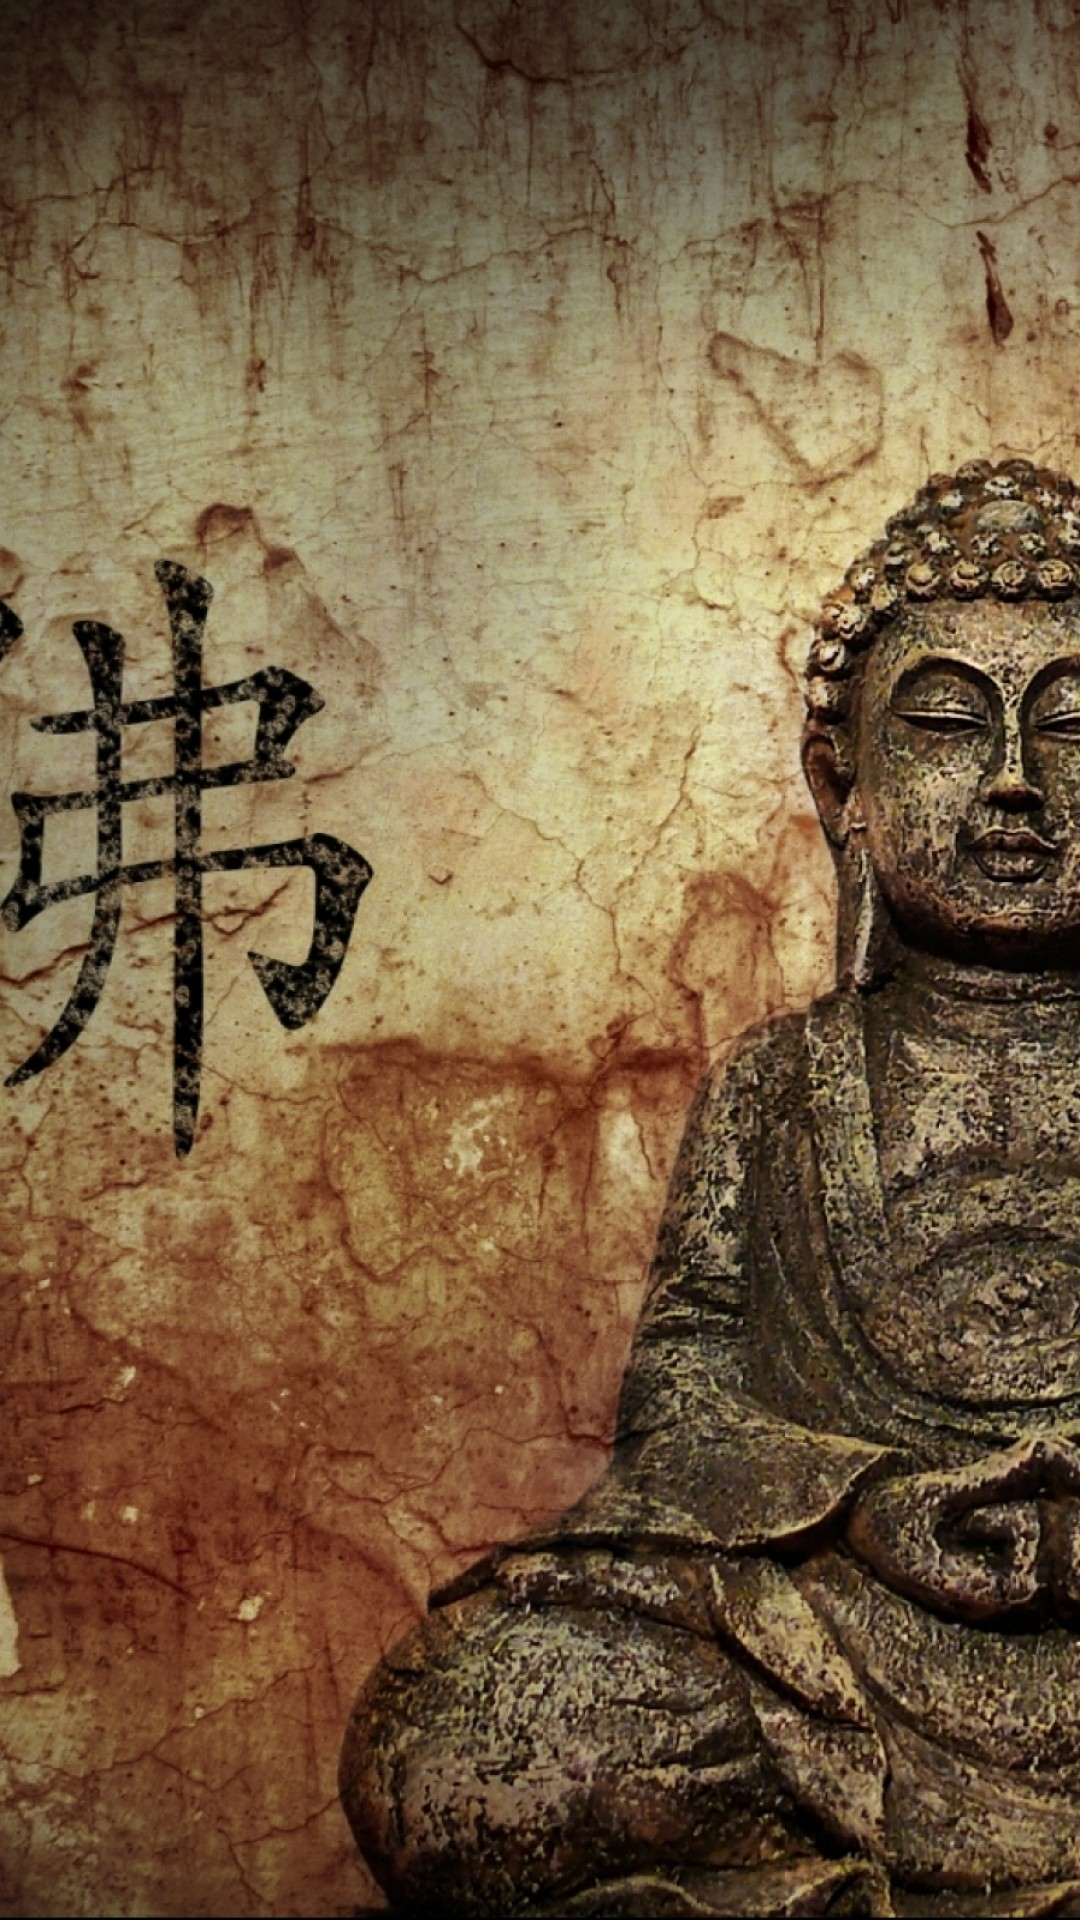 a study on buddhism and zen Study guide introduction the everyday zen study guide is designed for students who want to develop their zen or buddhist practice through concentrated study.